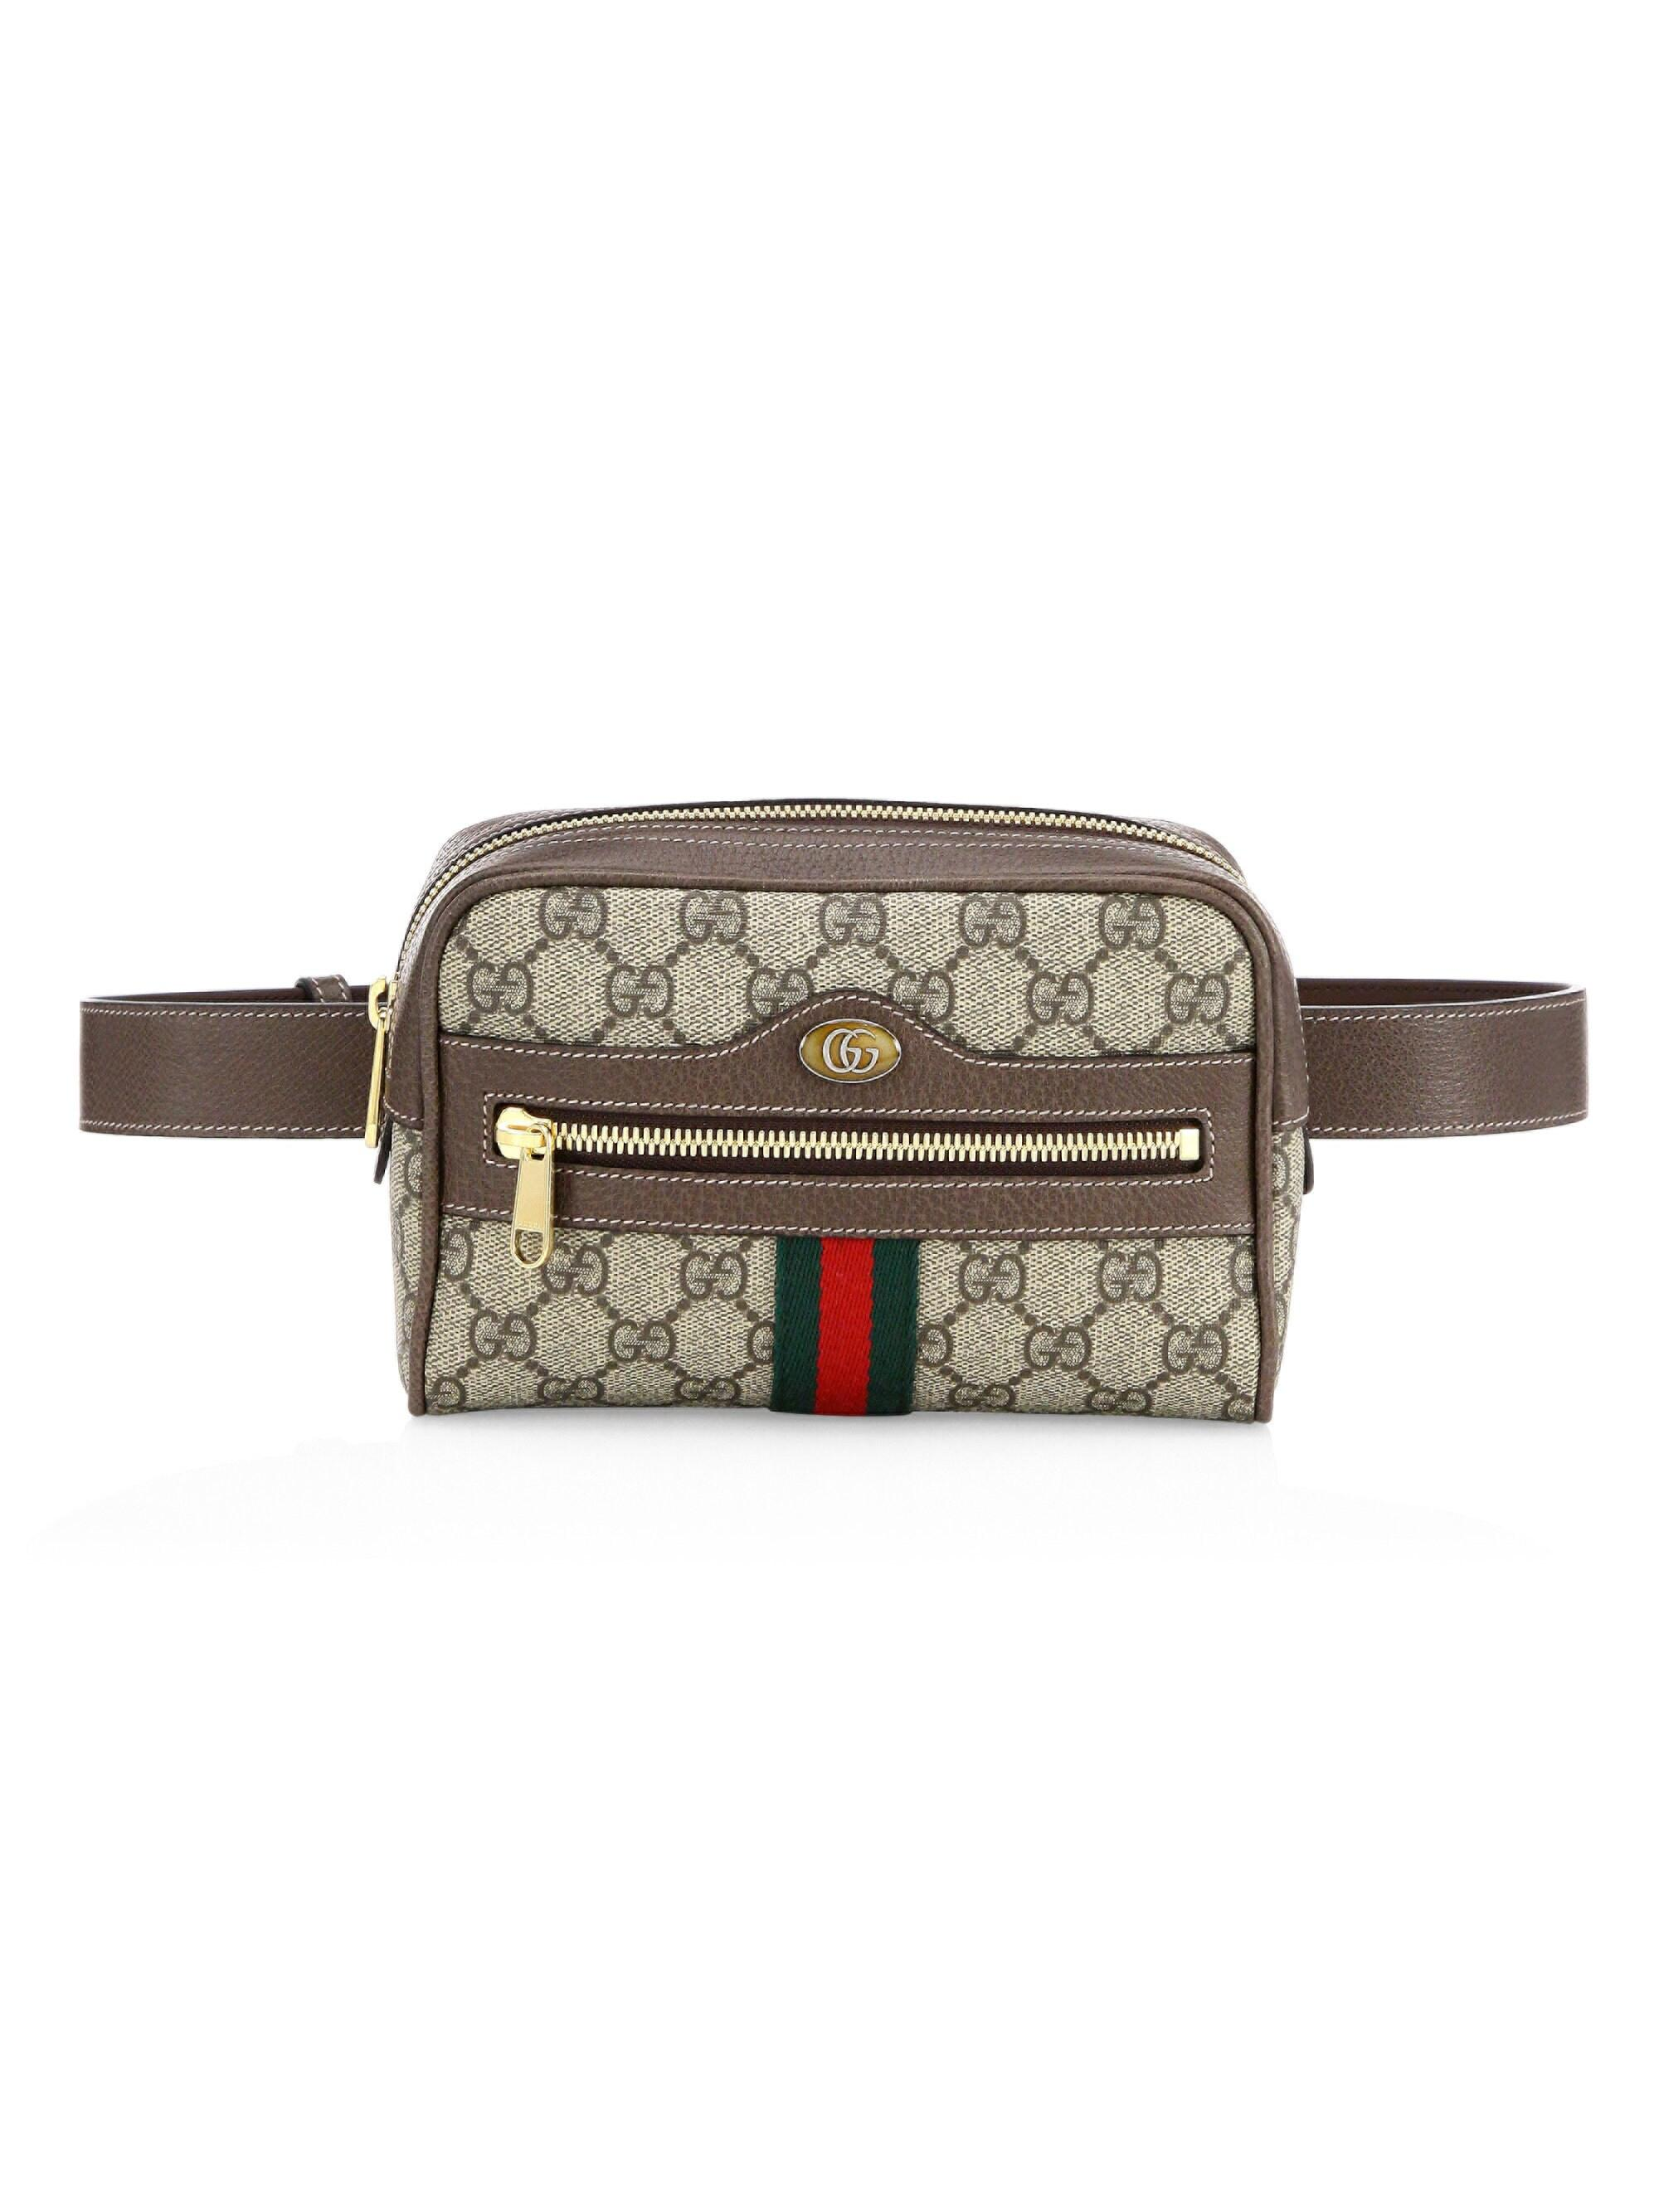 8a3f70aa7854e7 Gucci Brown Ophidia GG Supreme Small Belt Bag in Brown - Lyst